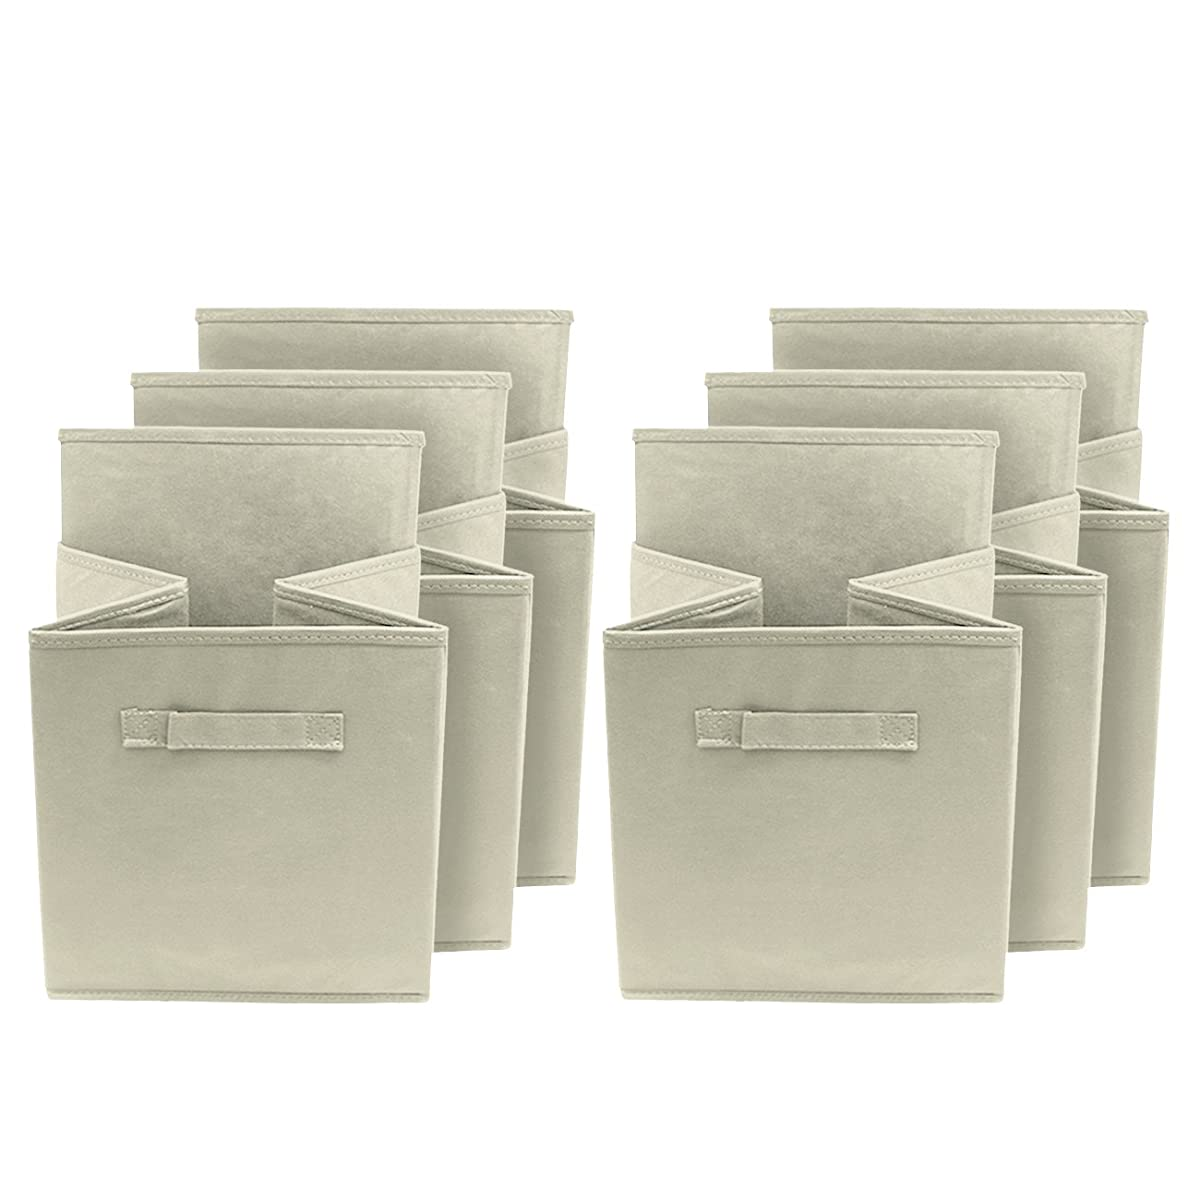 Sorbus Foldable Storage Cube Basket Bin, 6 Pack, Beige